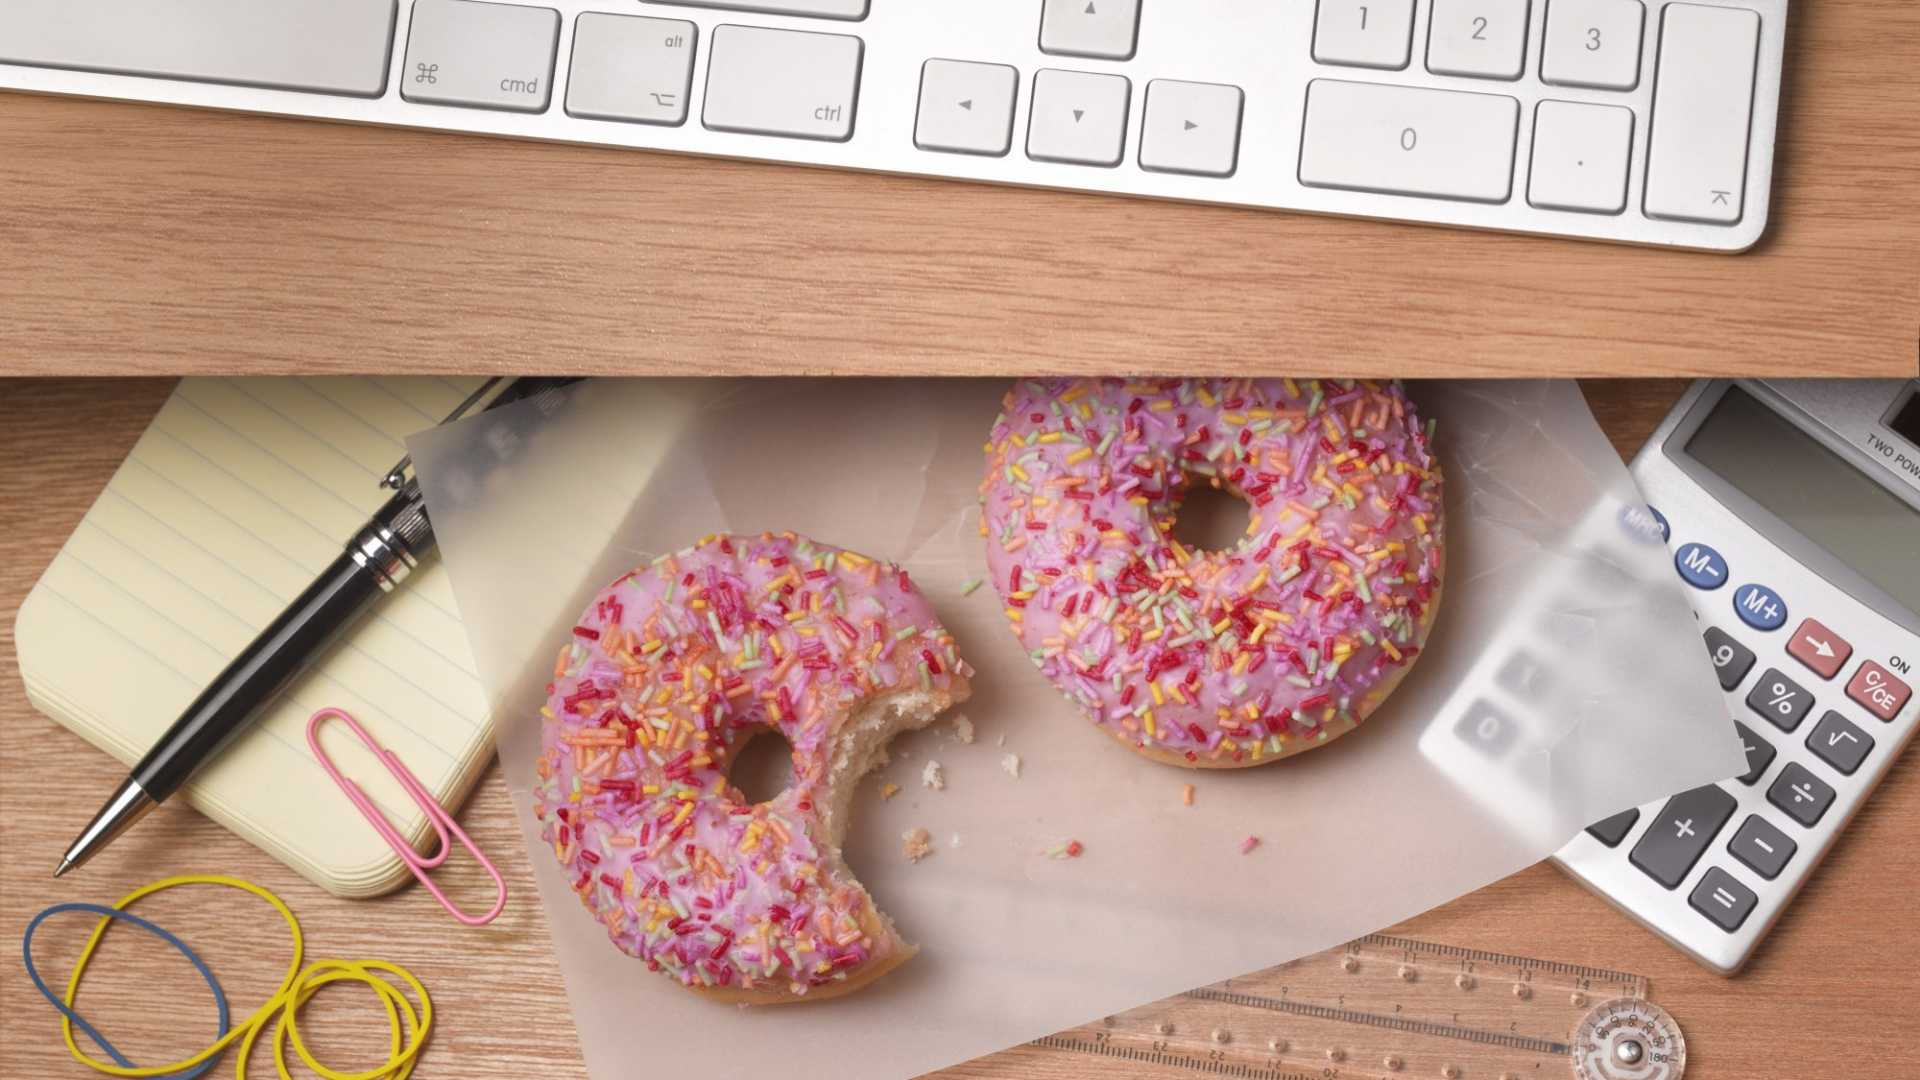 Addicted to Junk Food? New Study Reveals How You Can Win the Fight